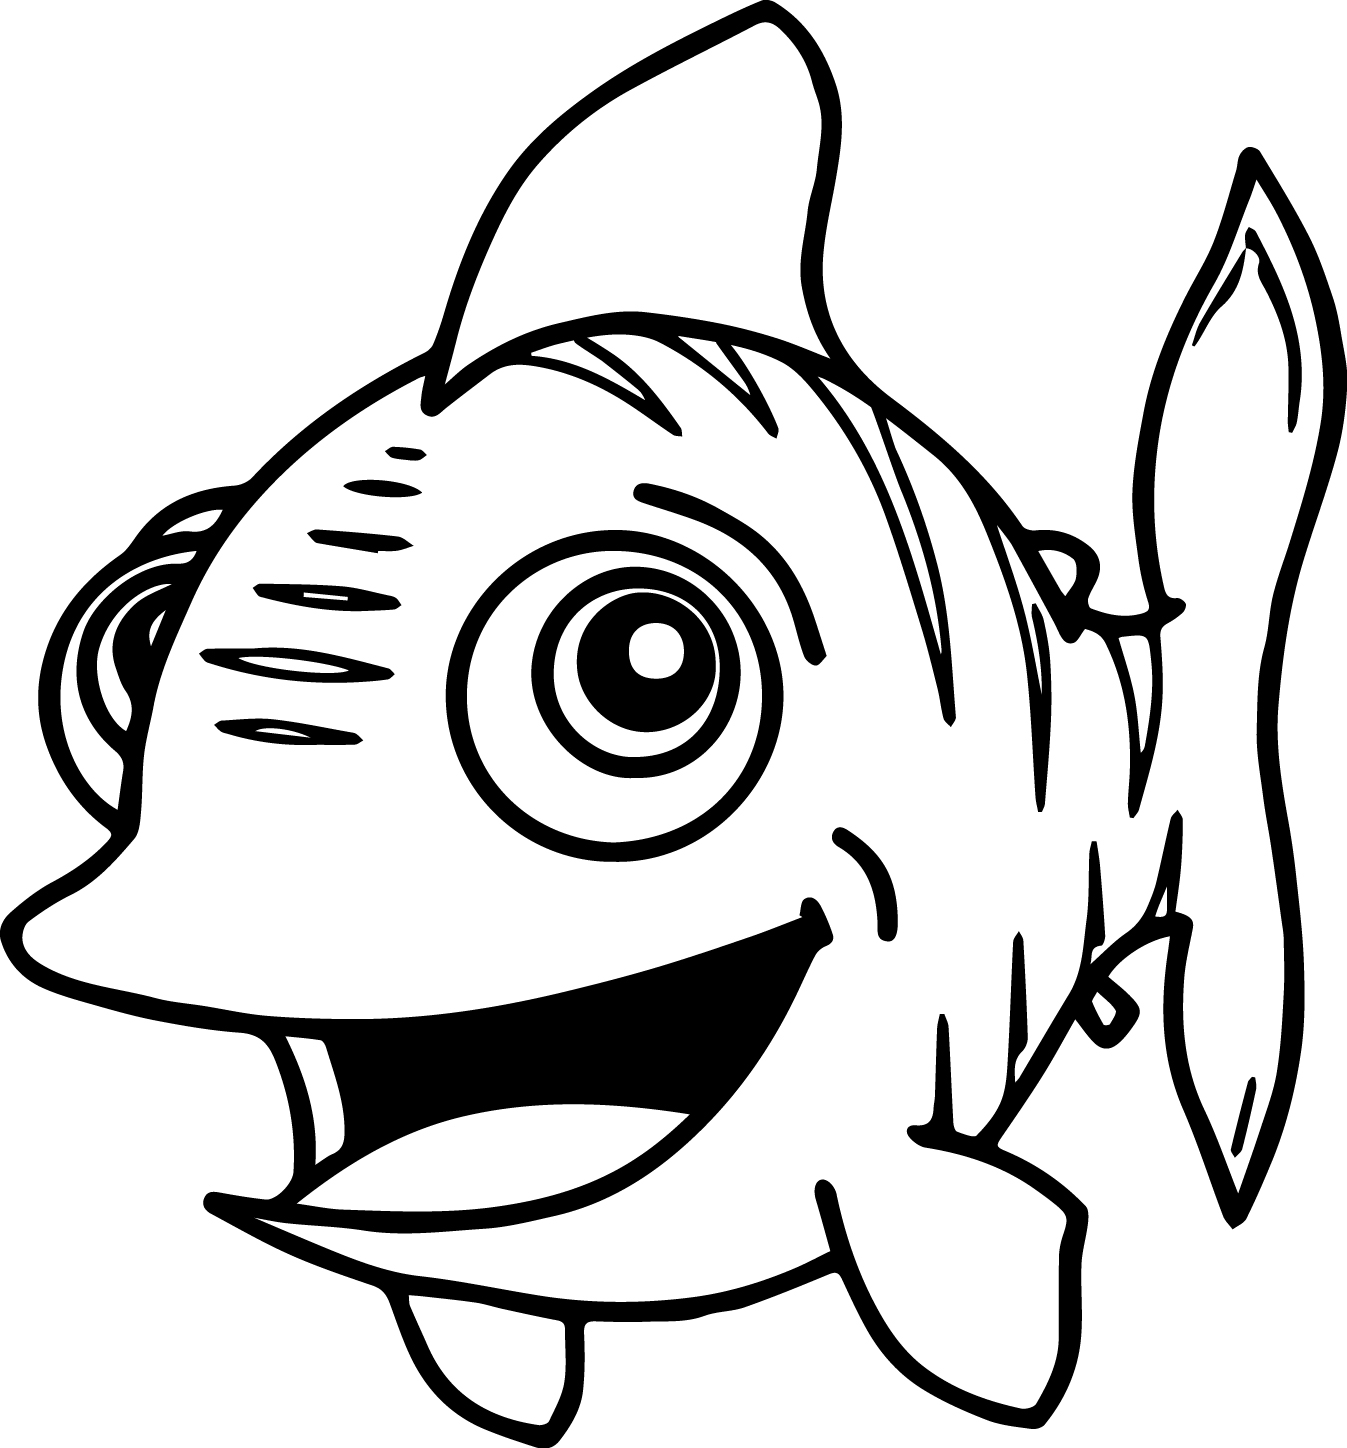 coloring pages cartoon fish - photo#15